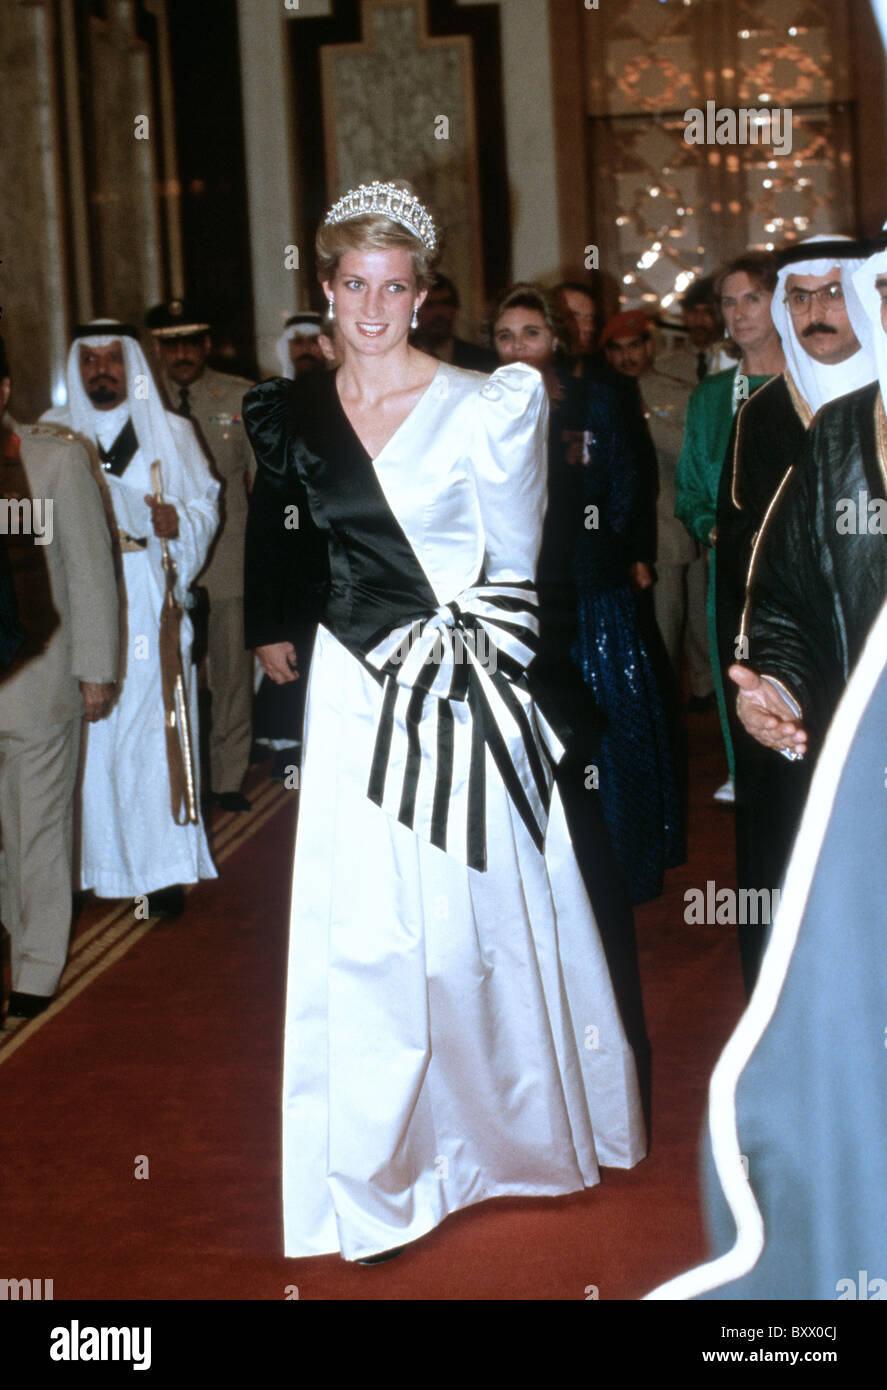 Saudi arabia princess wedding